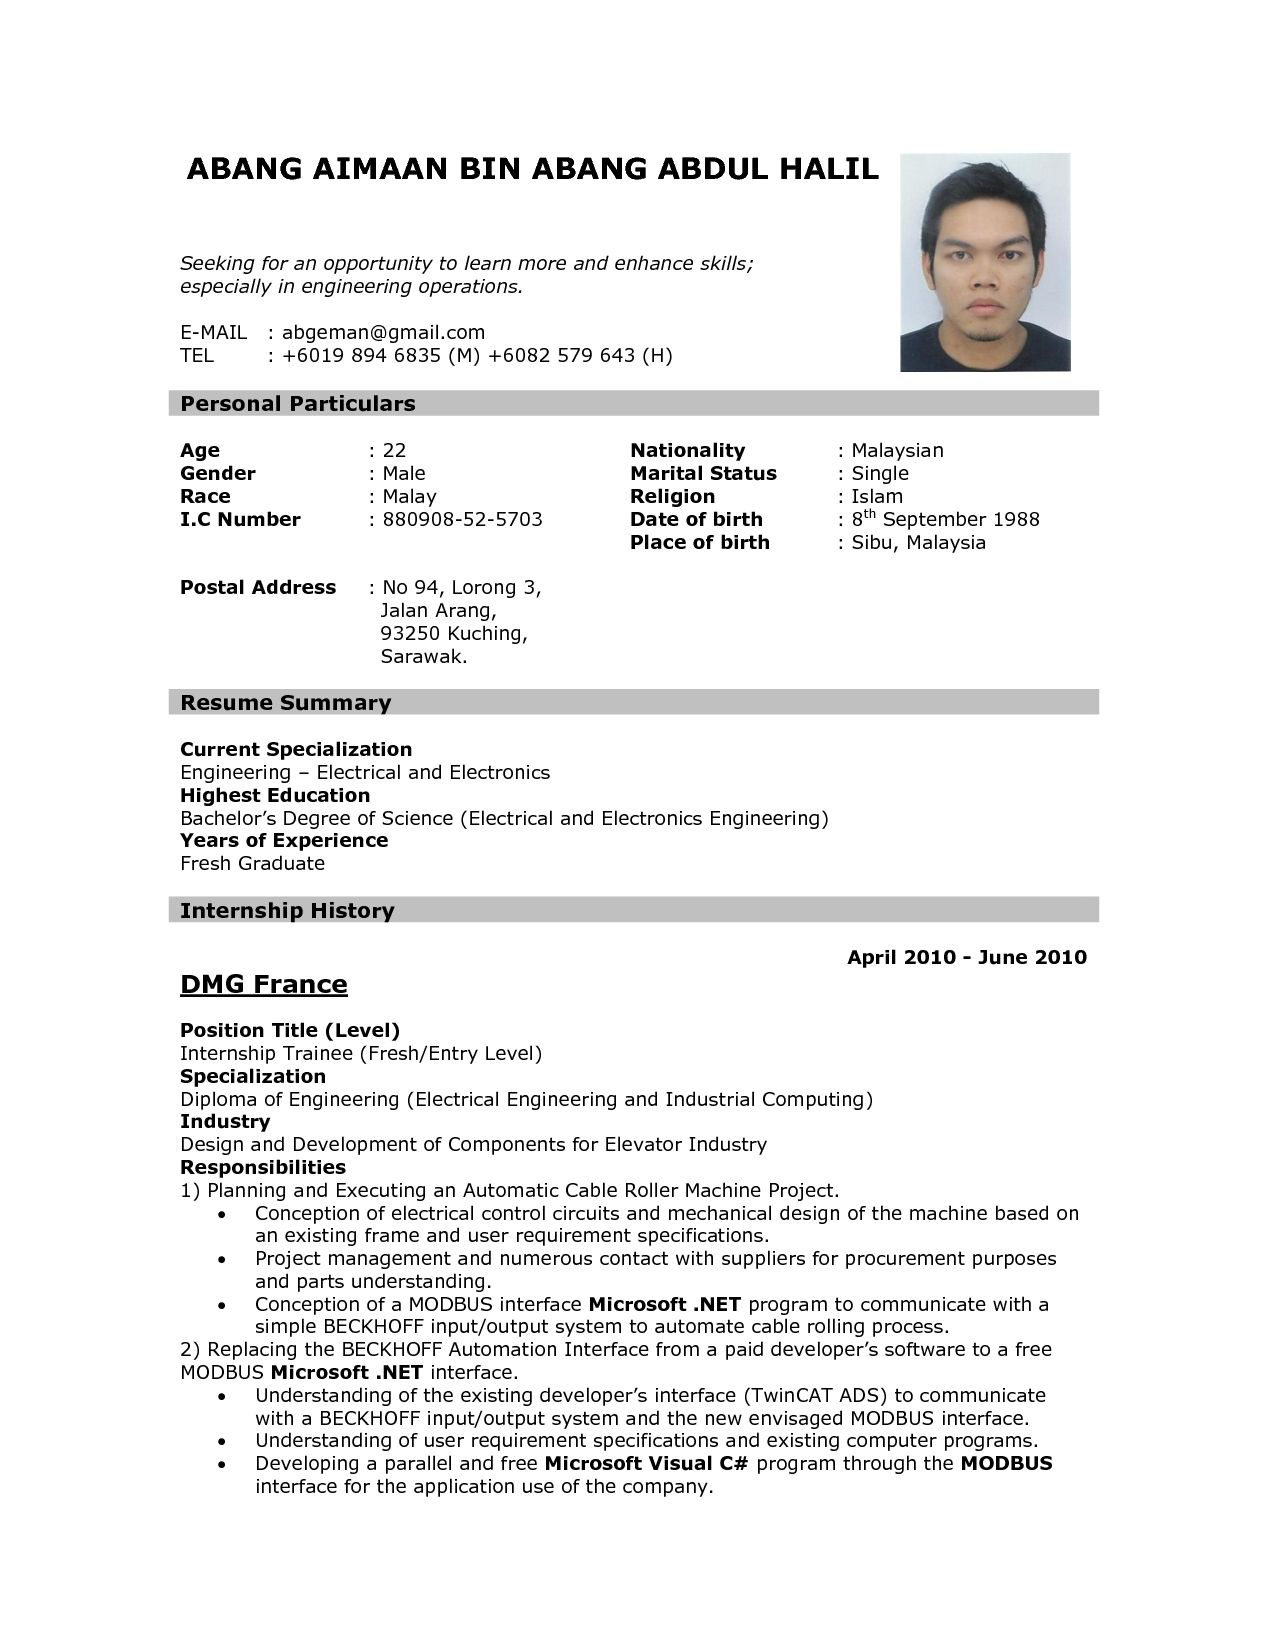 Applicant Resume Samples Grude Interpretomics Co